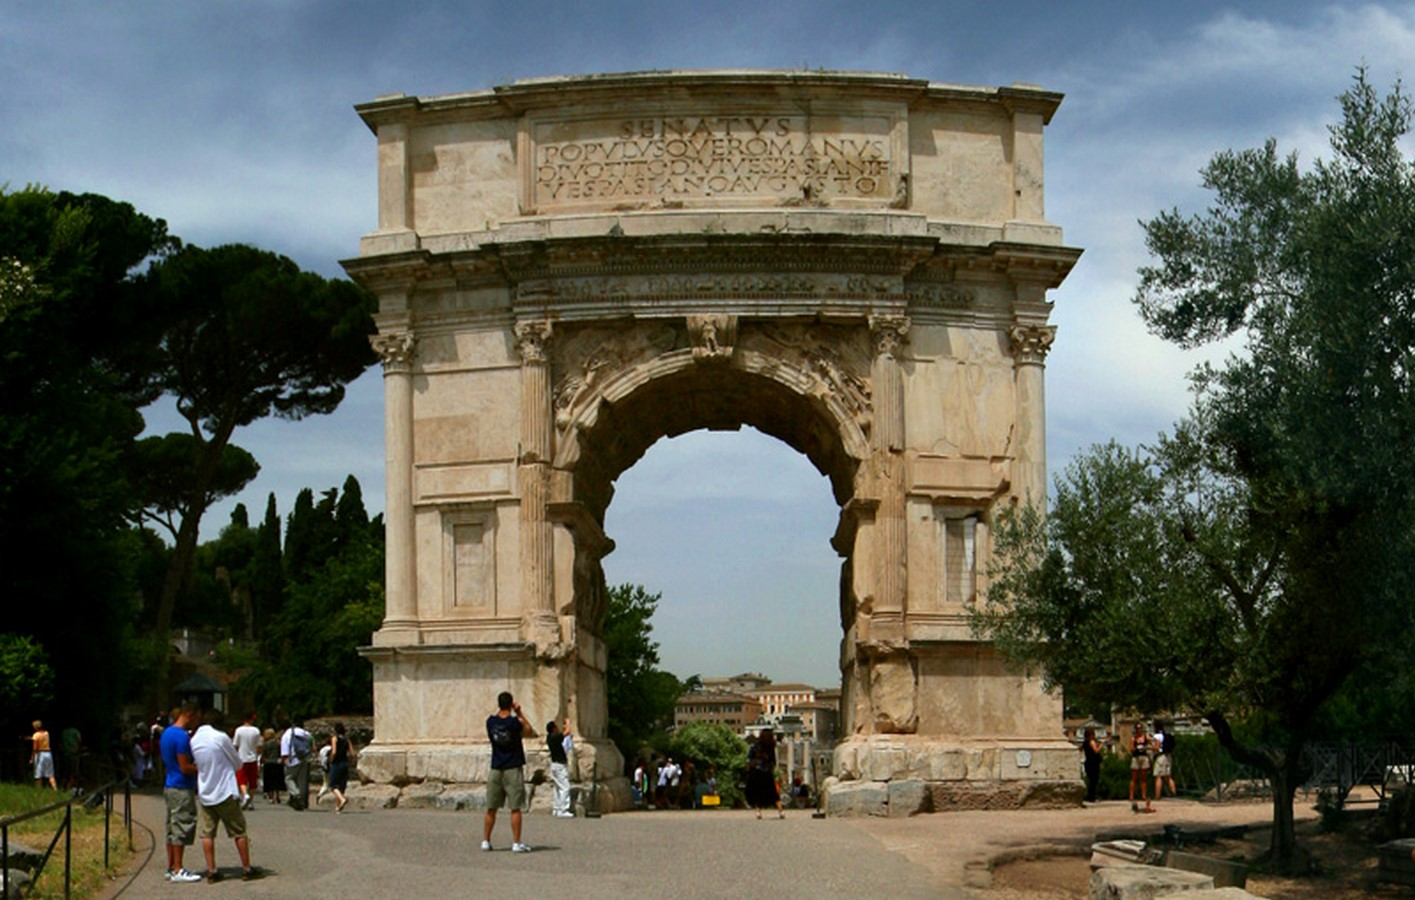 The Roman Forum, Rome: Heritage stuck in time - Sheet5